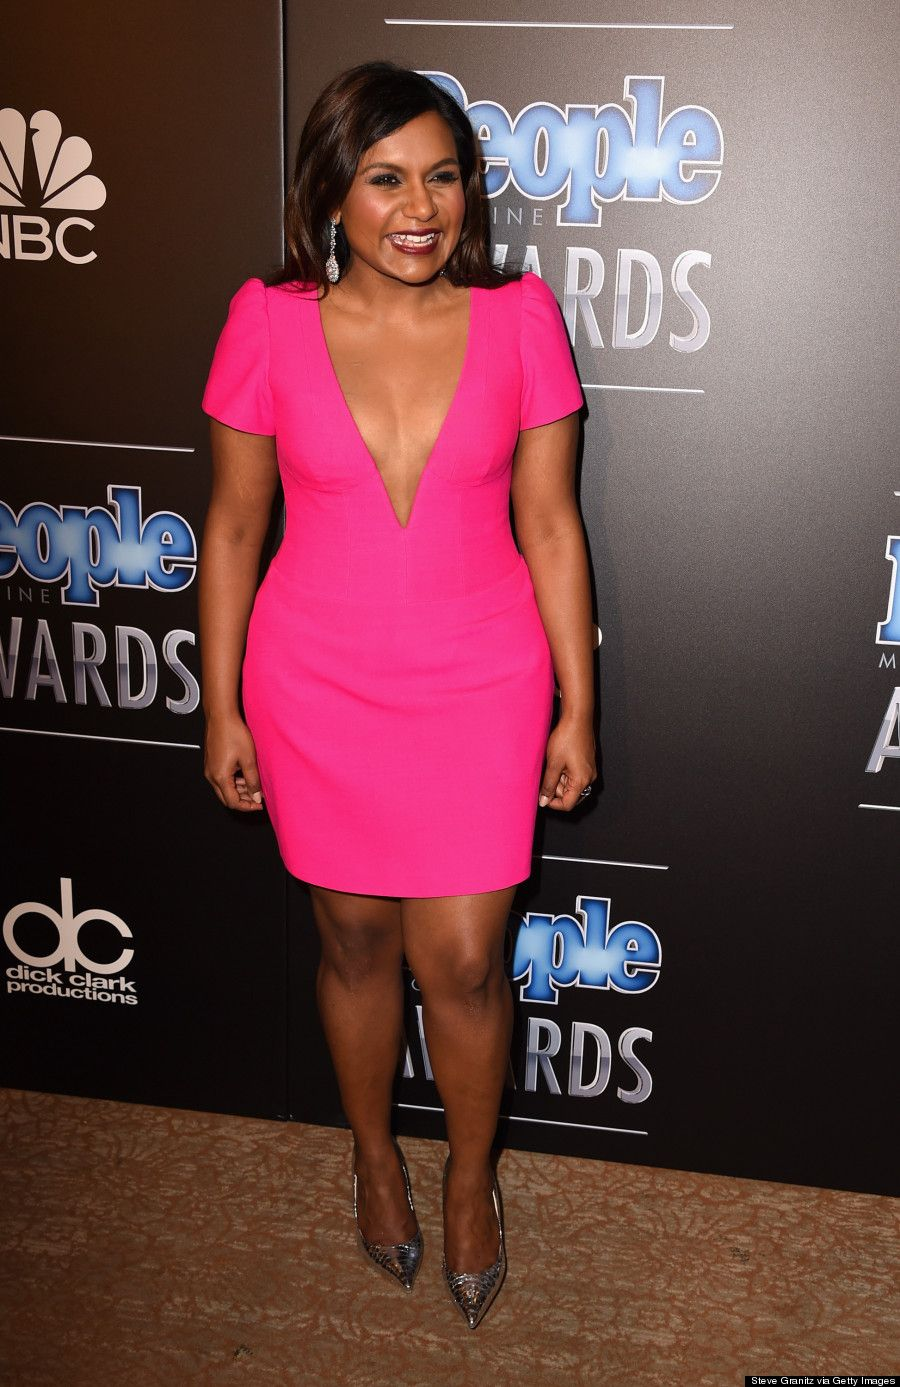 Mindy Kaling Wears Salvador Perez The People Magazine Awards